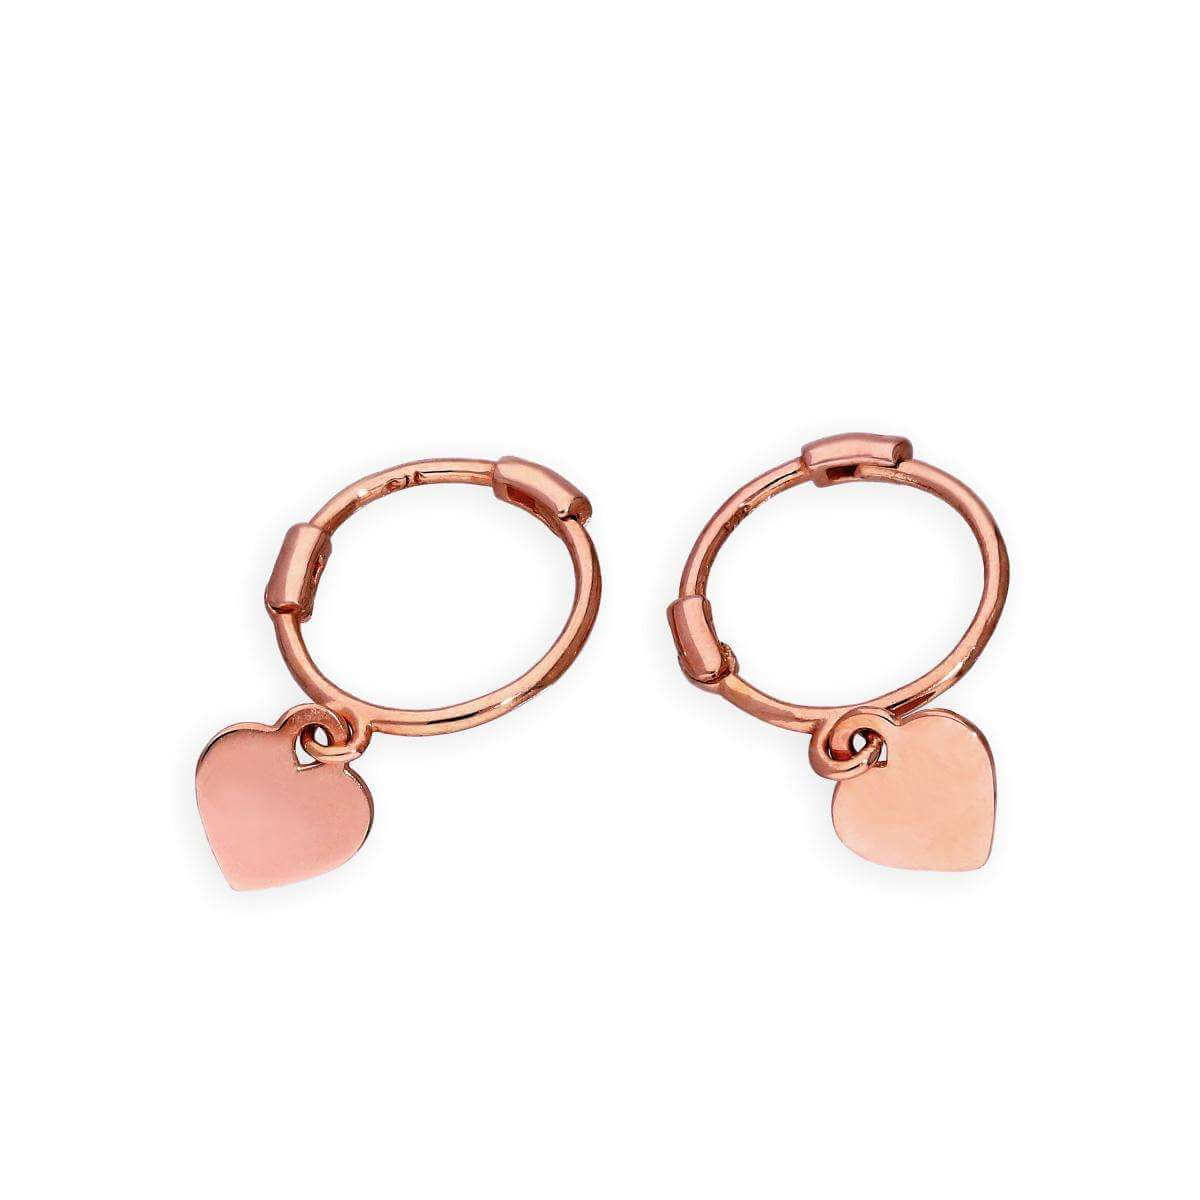 9ct Rose Gold Heart Hoop Earrings